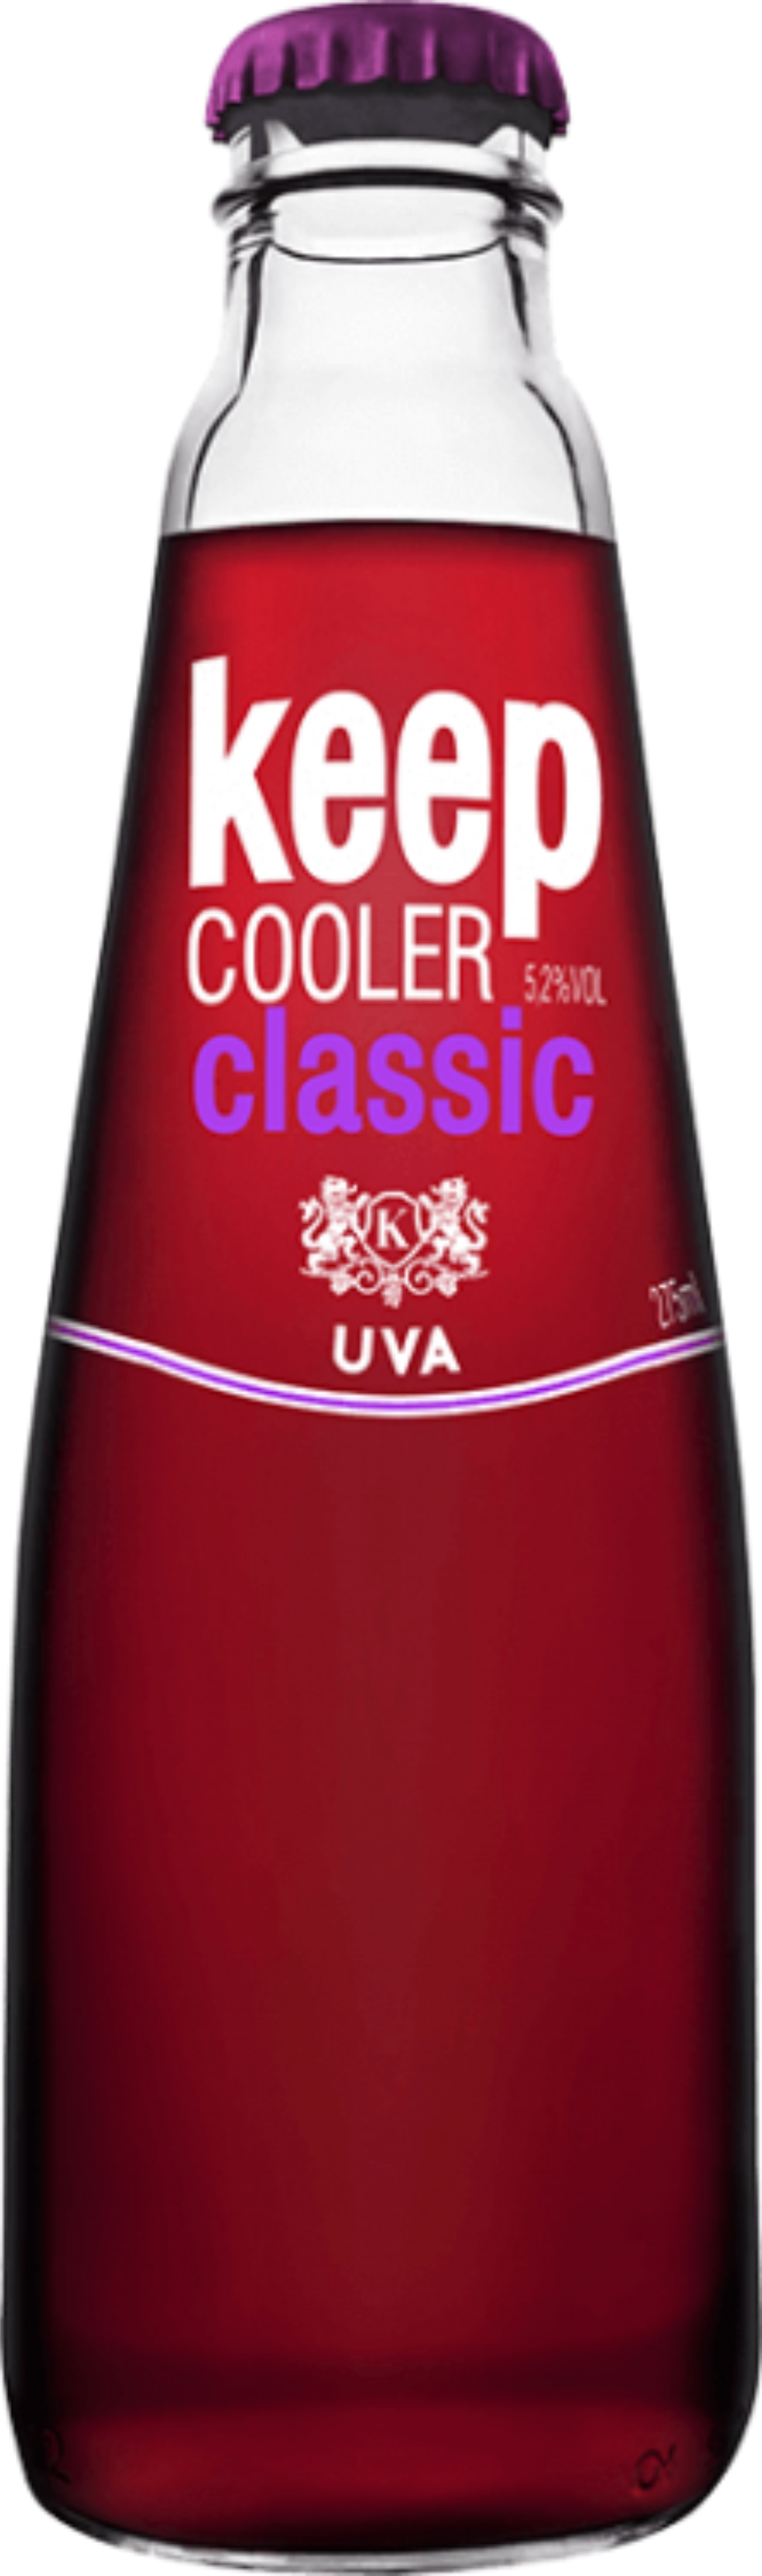 KEEP COOLER CLASSIC UVA 6X275 ML